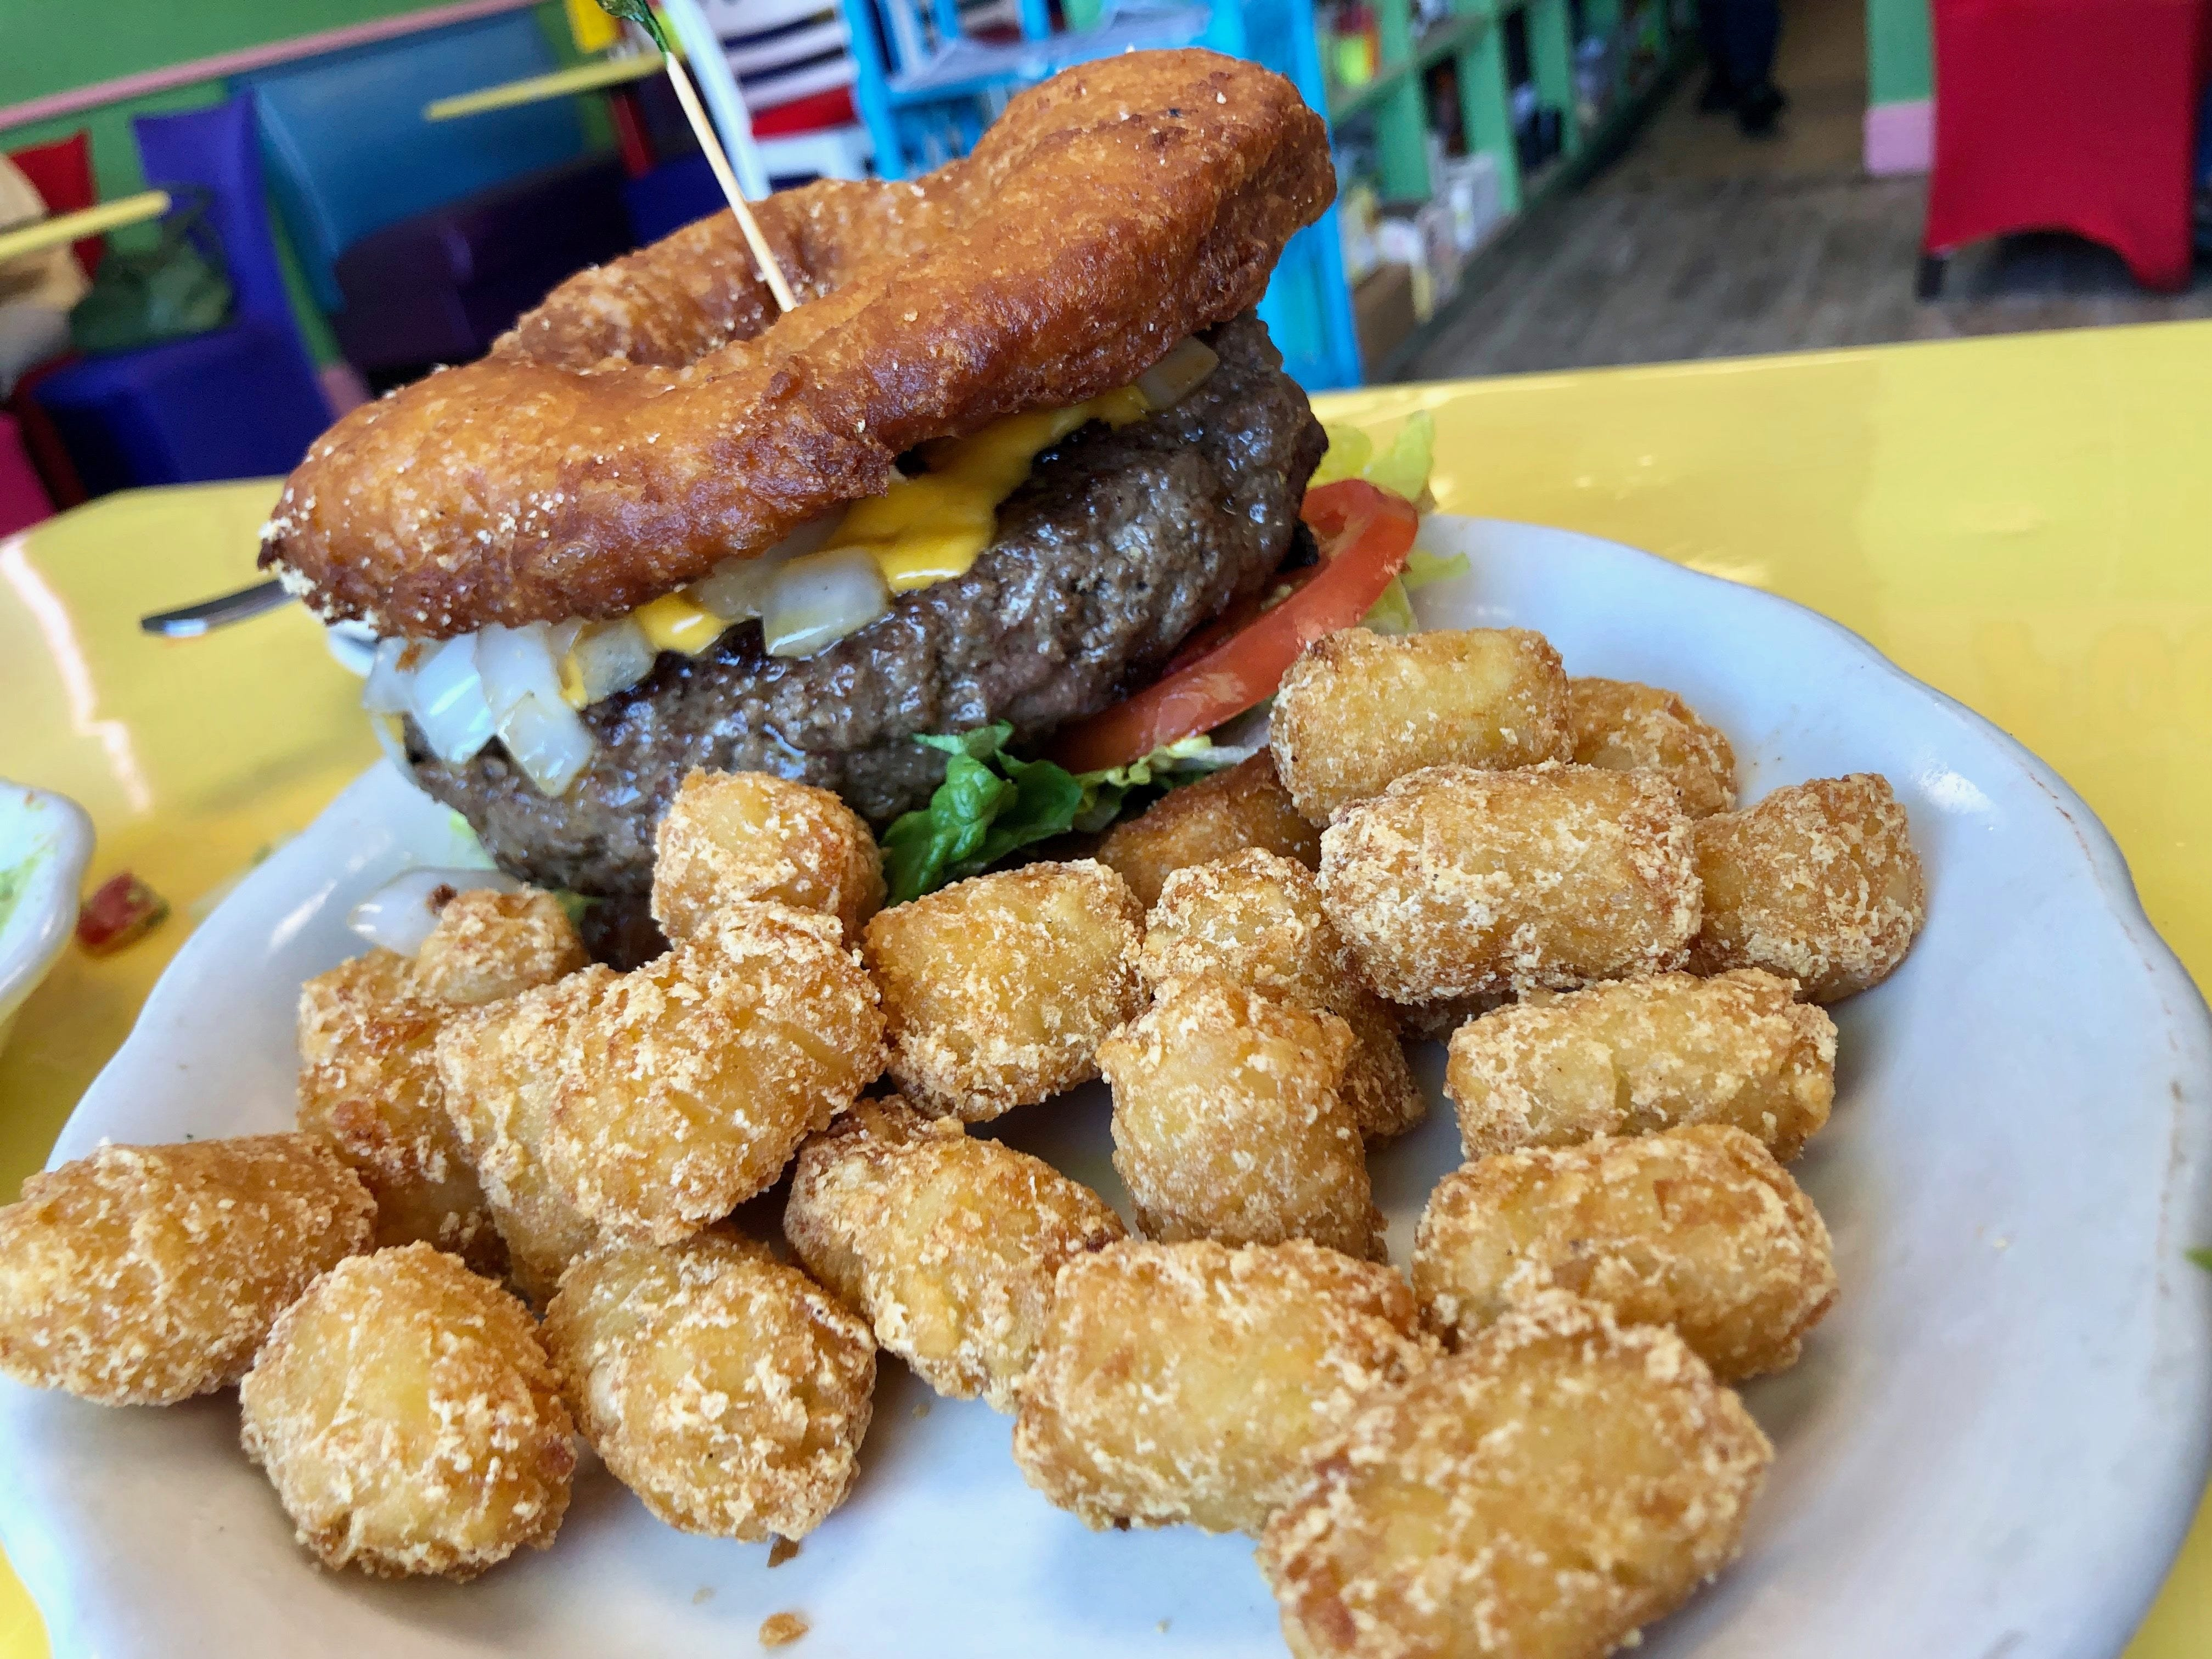 My burger at FK Your Diet came to the table unexpectedly sandwiched with deep-fried hamburger buns.